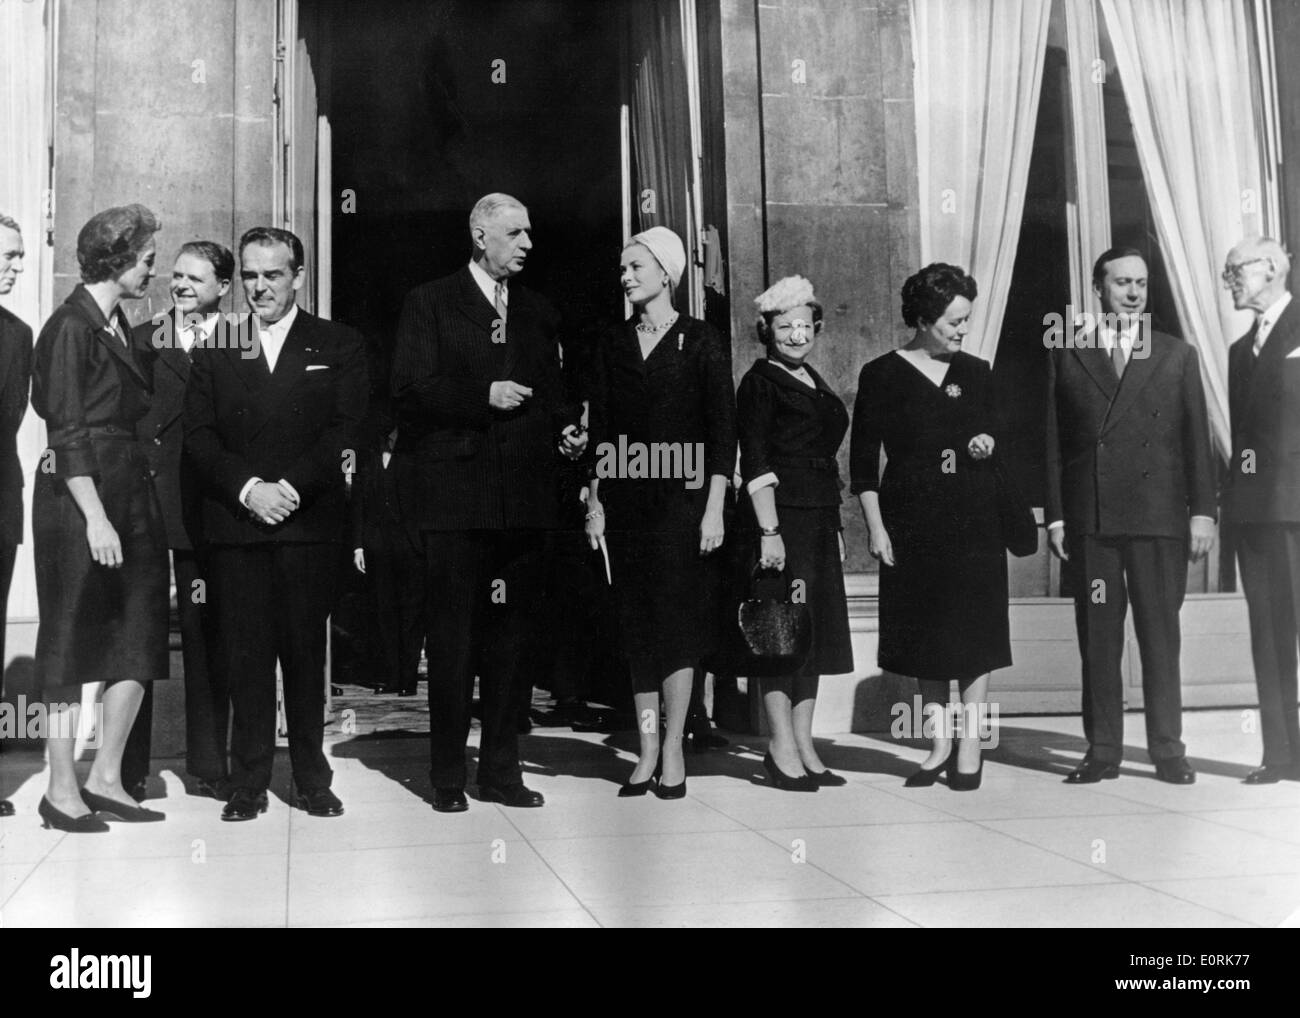 Charles De Gaulle is visited by Monaco royalty - Stock Image